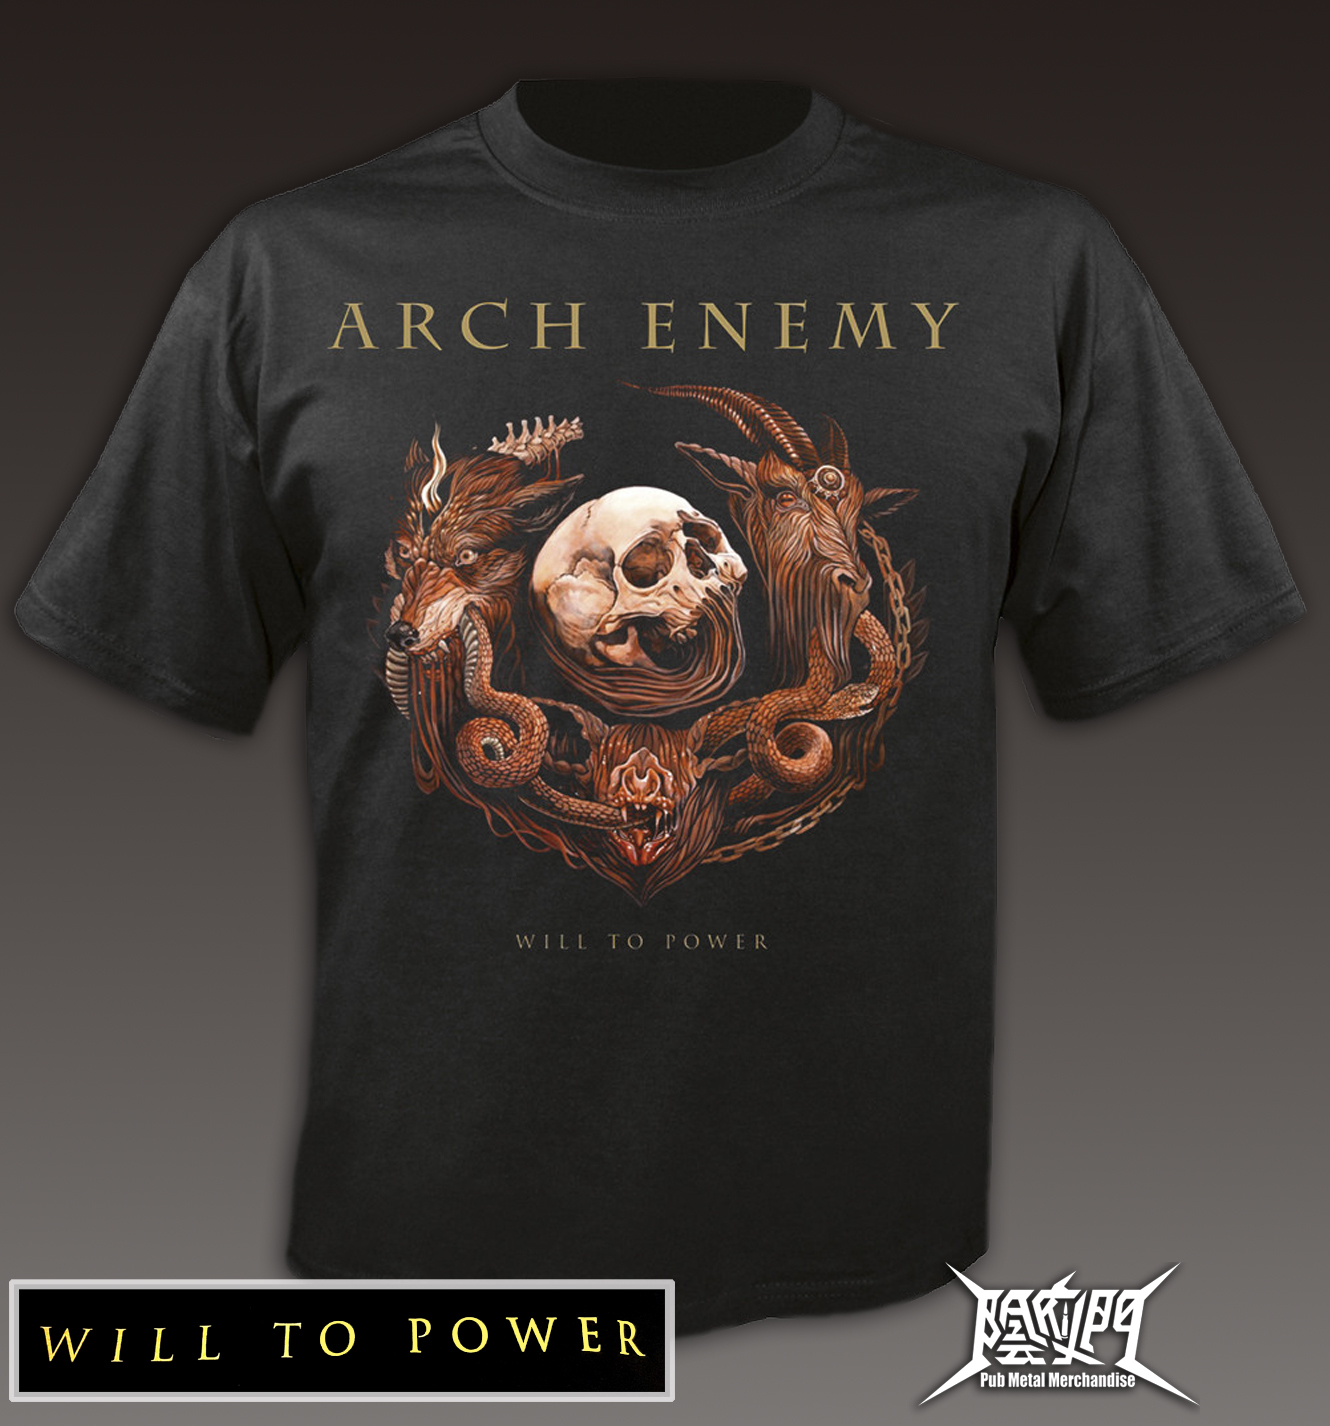 Arch enemy-will to power.jpg